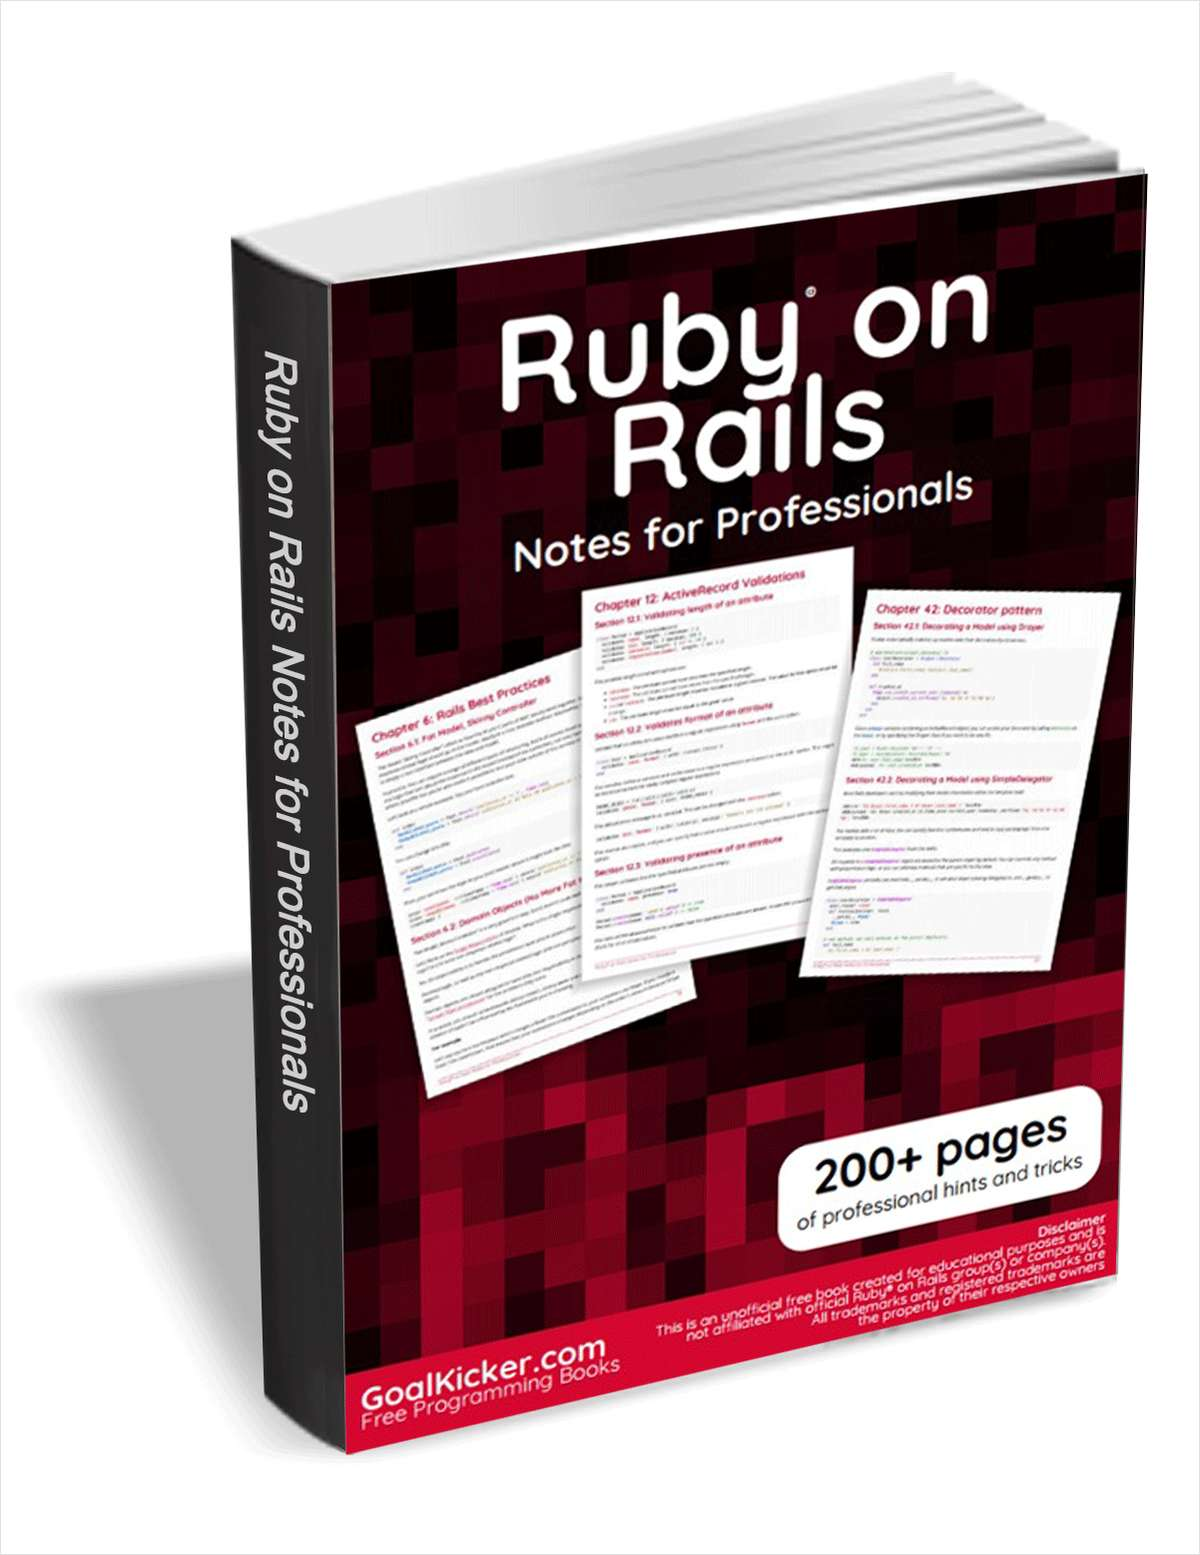 Ruby on Rails Notes for Professionals